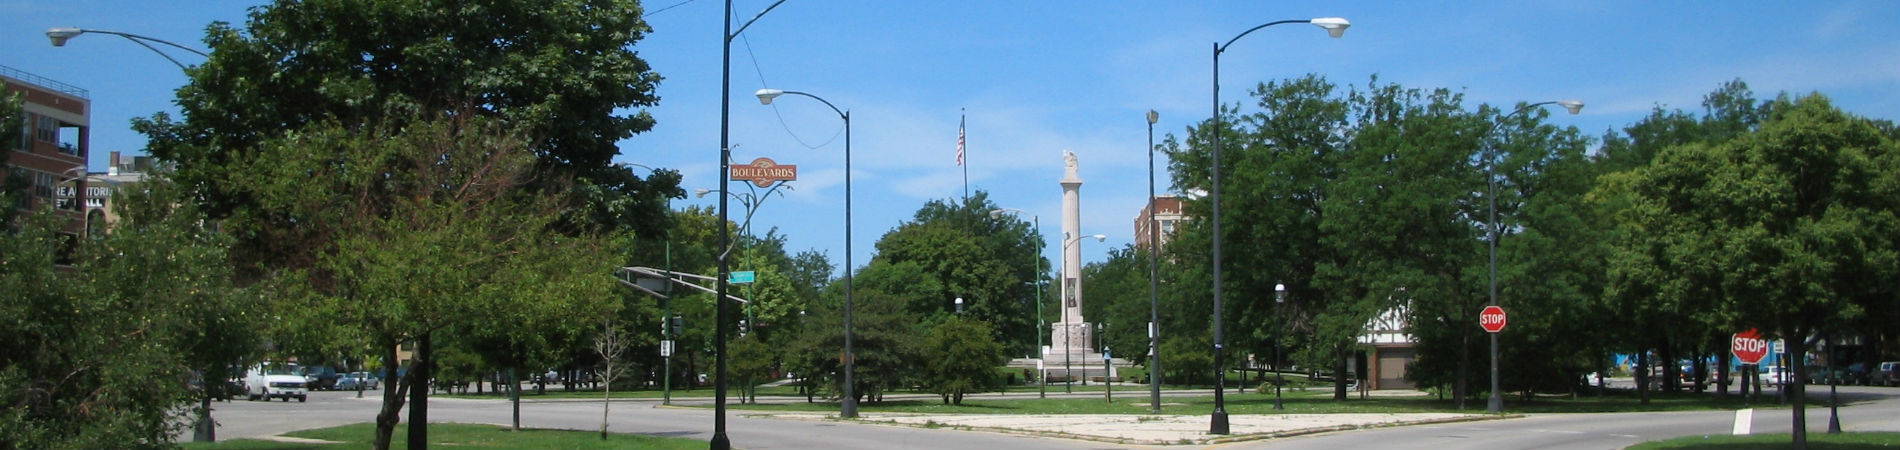 things to do in logan square chicago